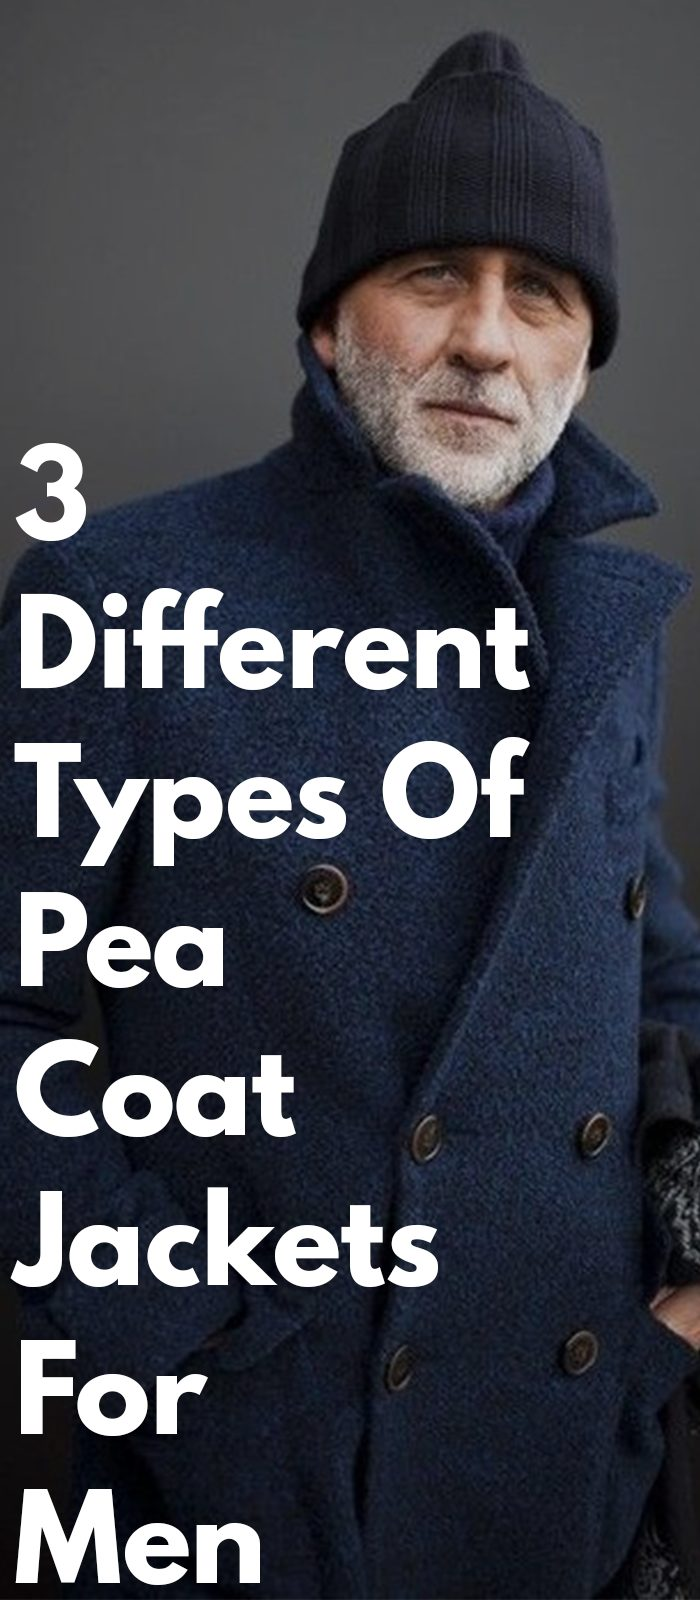 3 Types Of Pea Coat Jackets